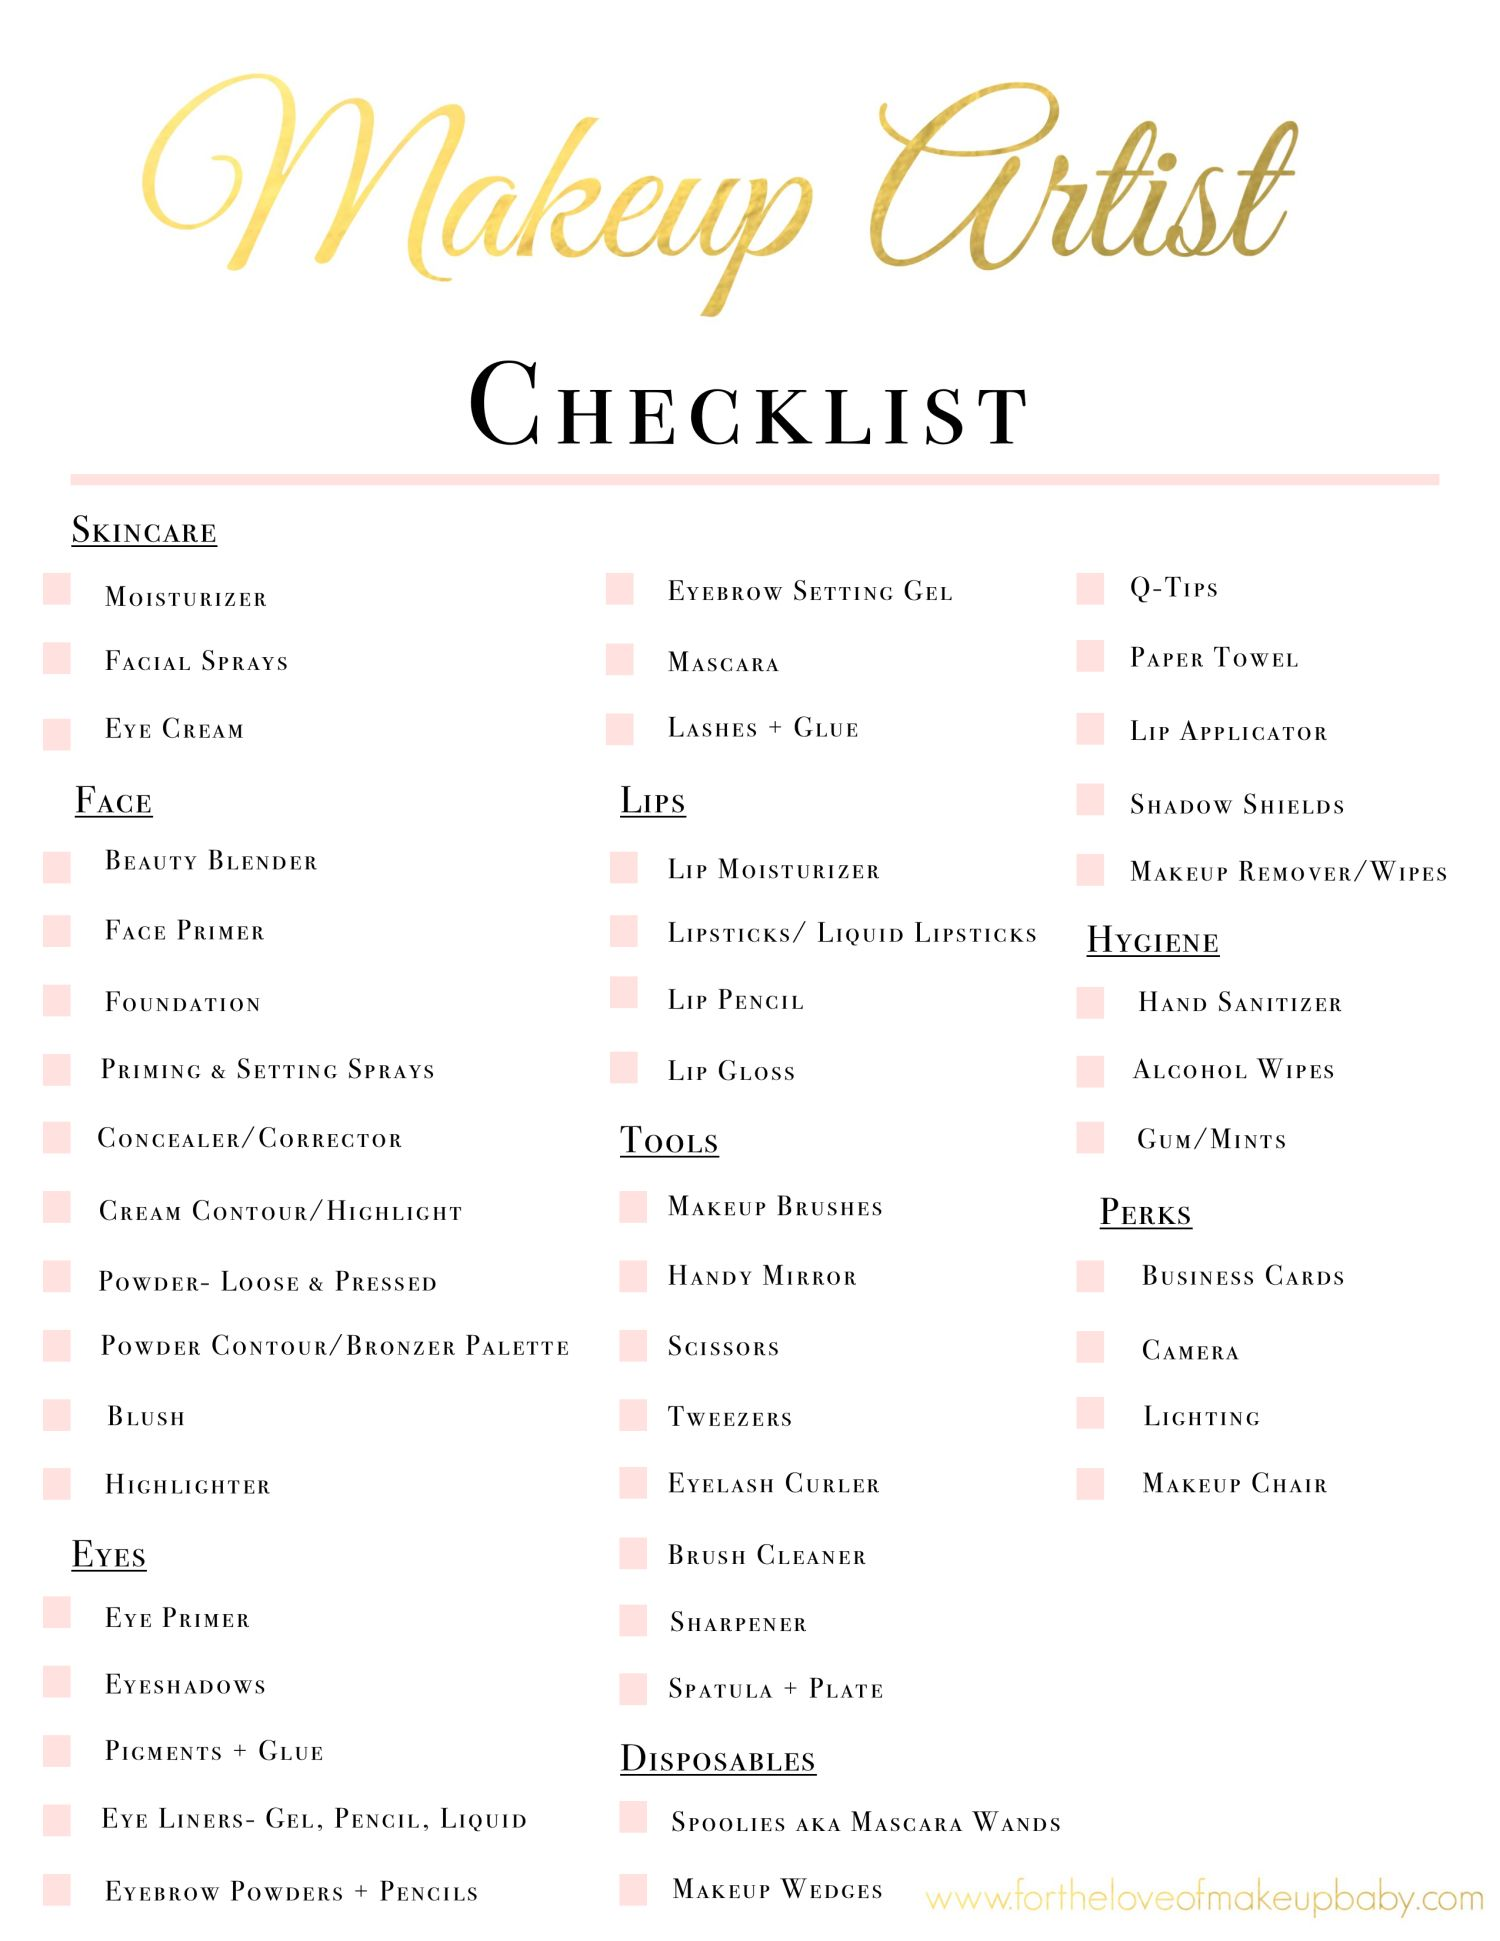 Makeup Artist Kit Checklist www.fortheloveofmakeupbaby